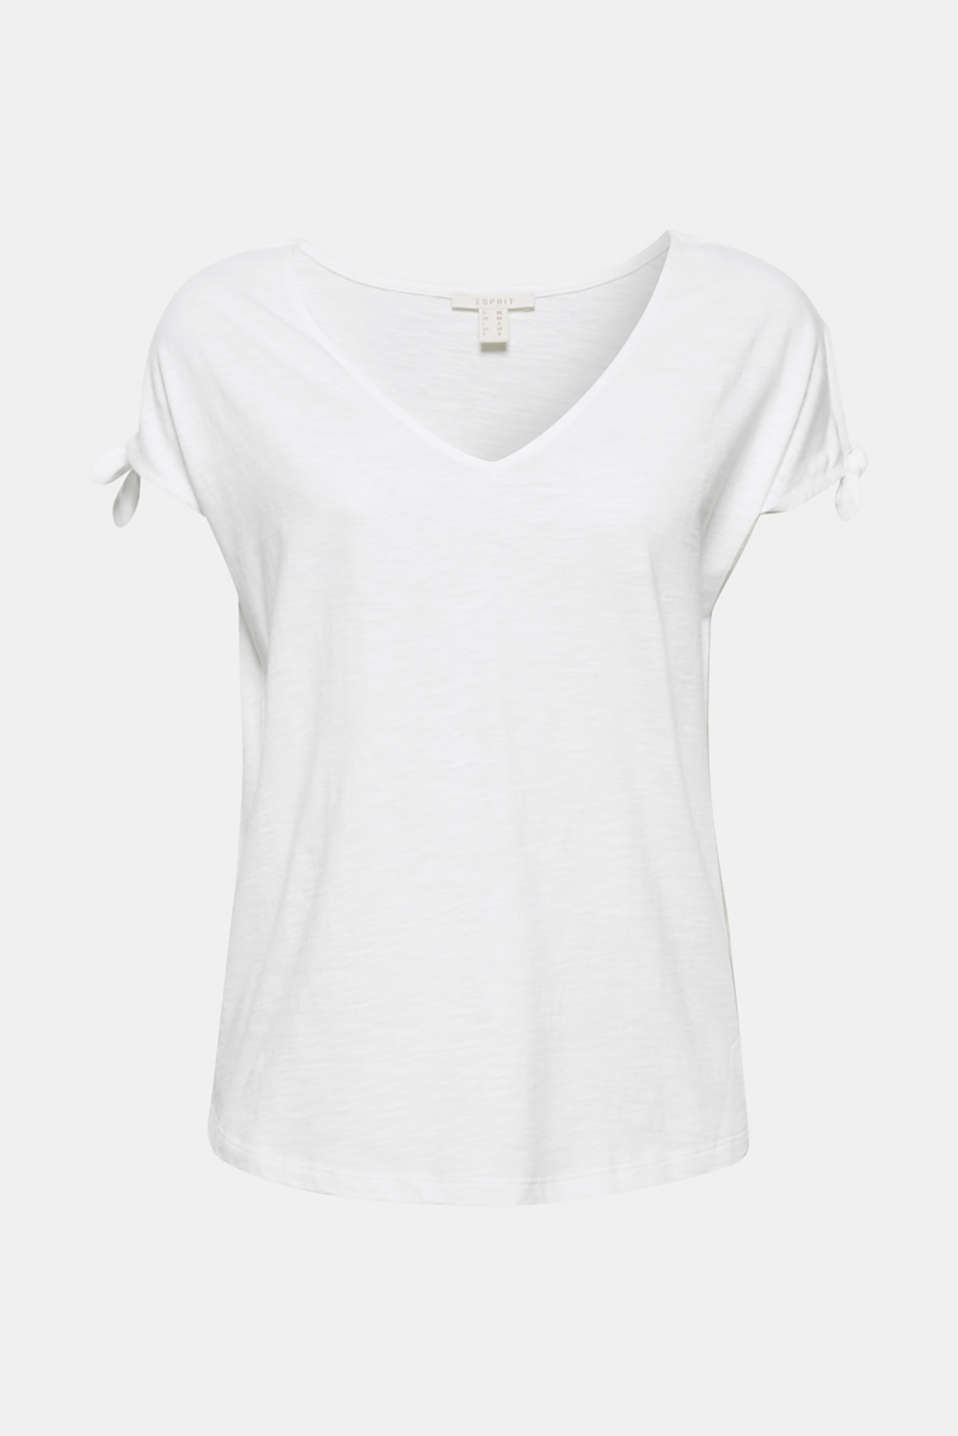 Lightweight slub jersey, a large V-neckline and small cut-outs on the sleeves make this T-shirt airy and trendy at the time!